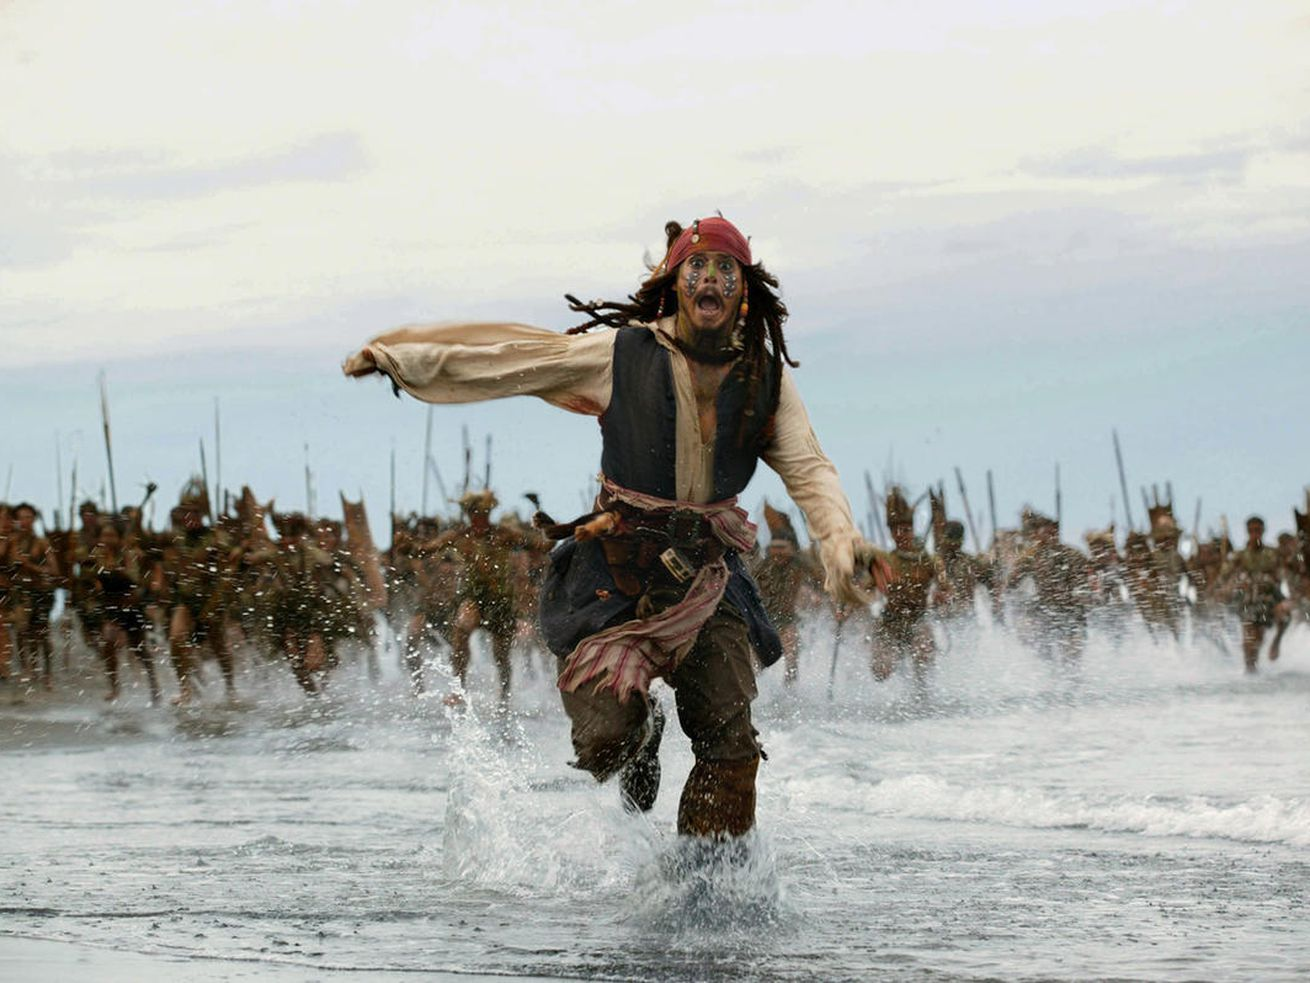 'Pirates of the Caribbean' stunt double just talked about the most insane scene